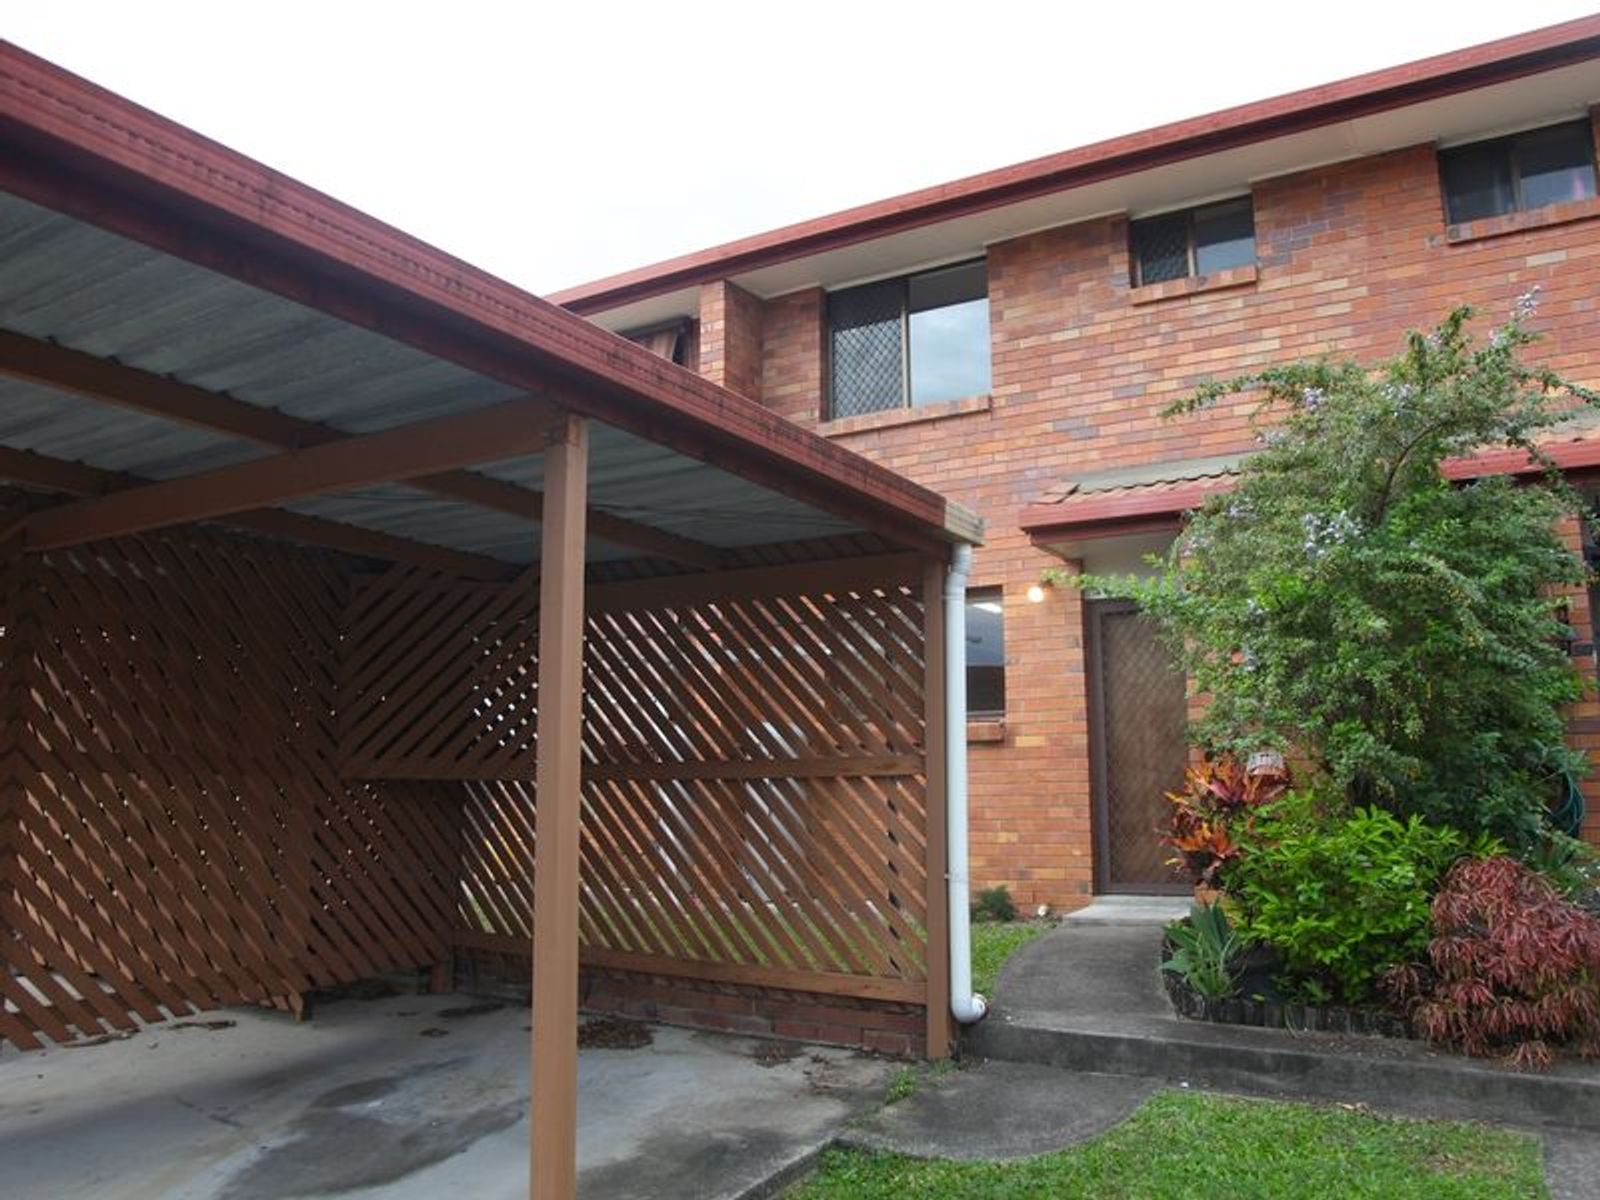 18/7 Chamberlain Avenue, Rochedale South, QLD 4123